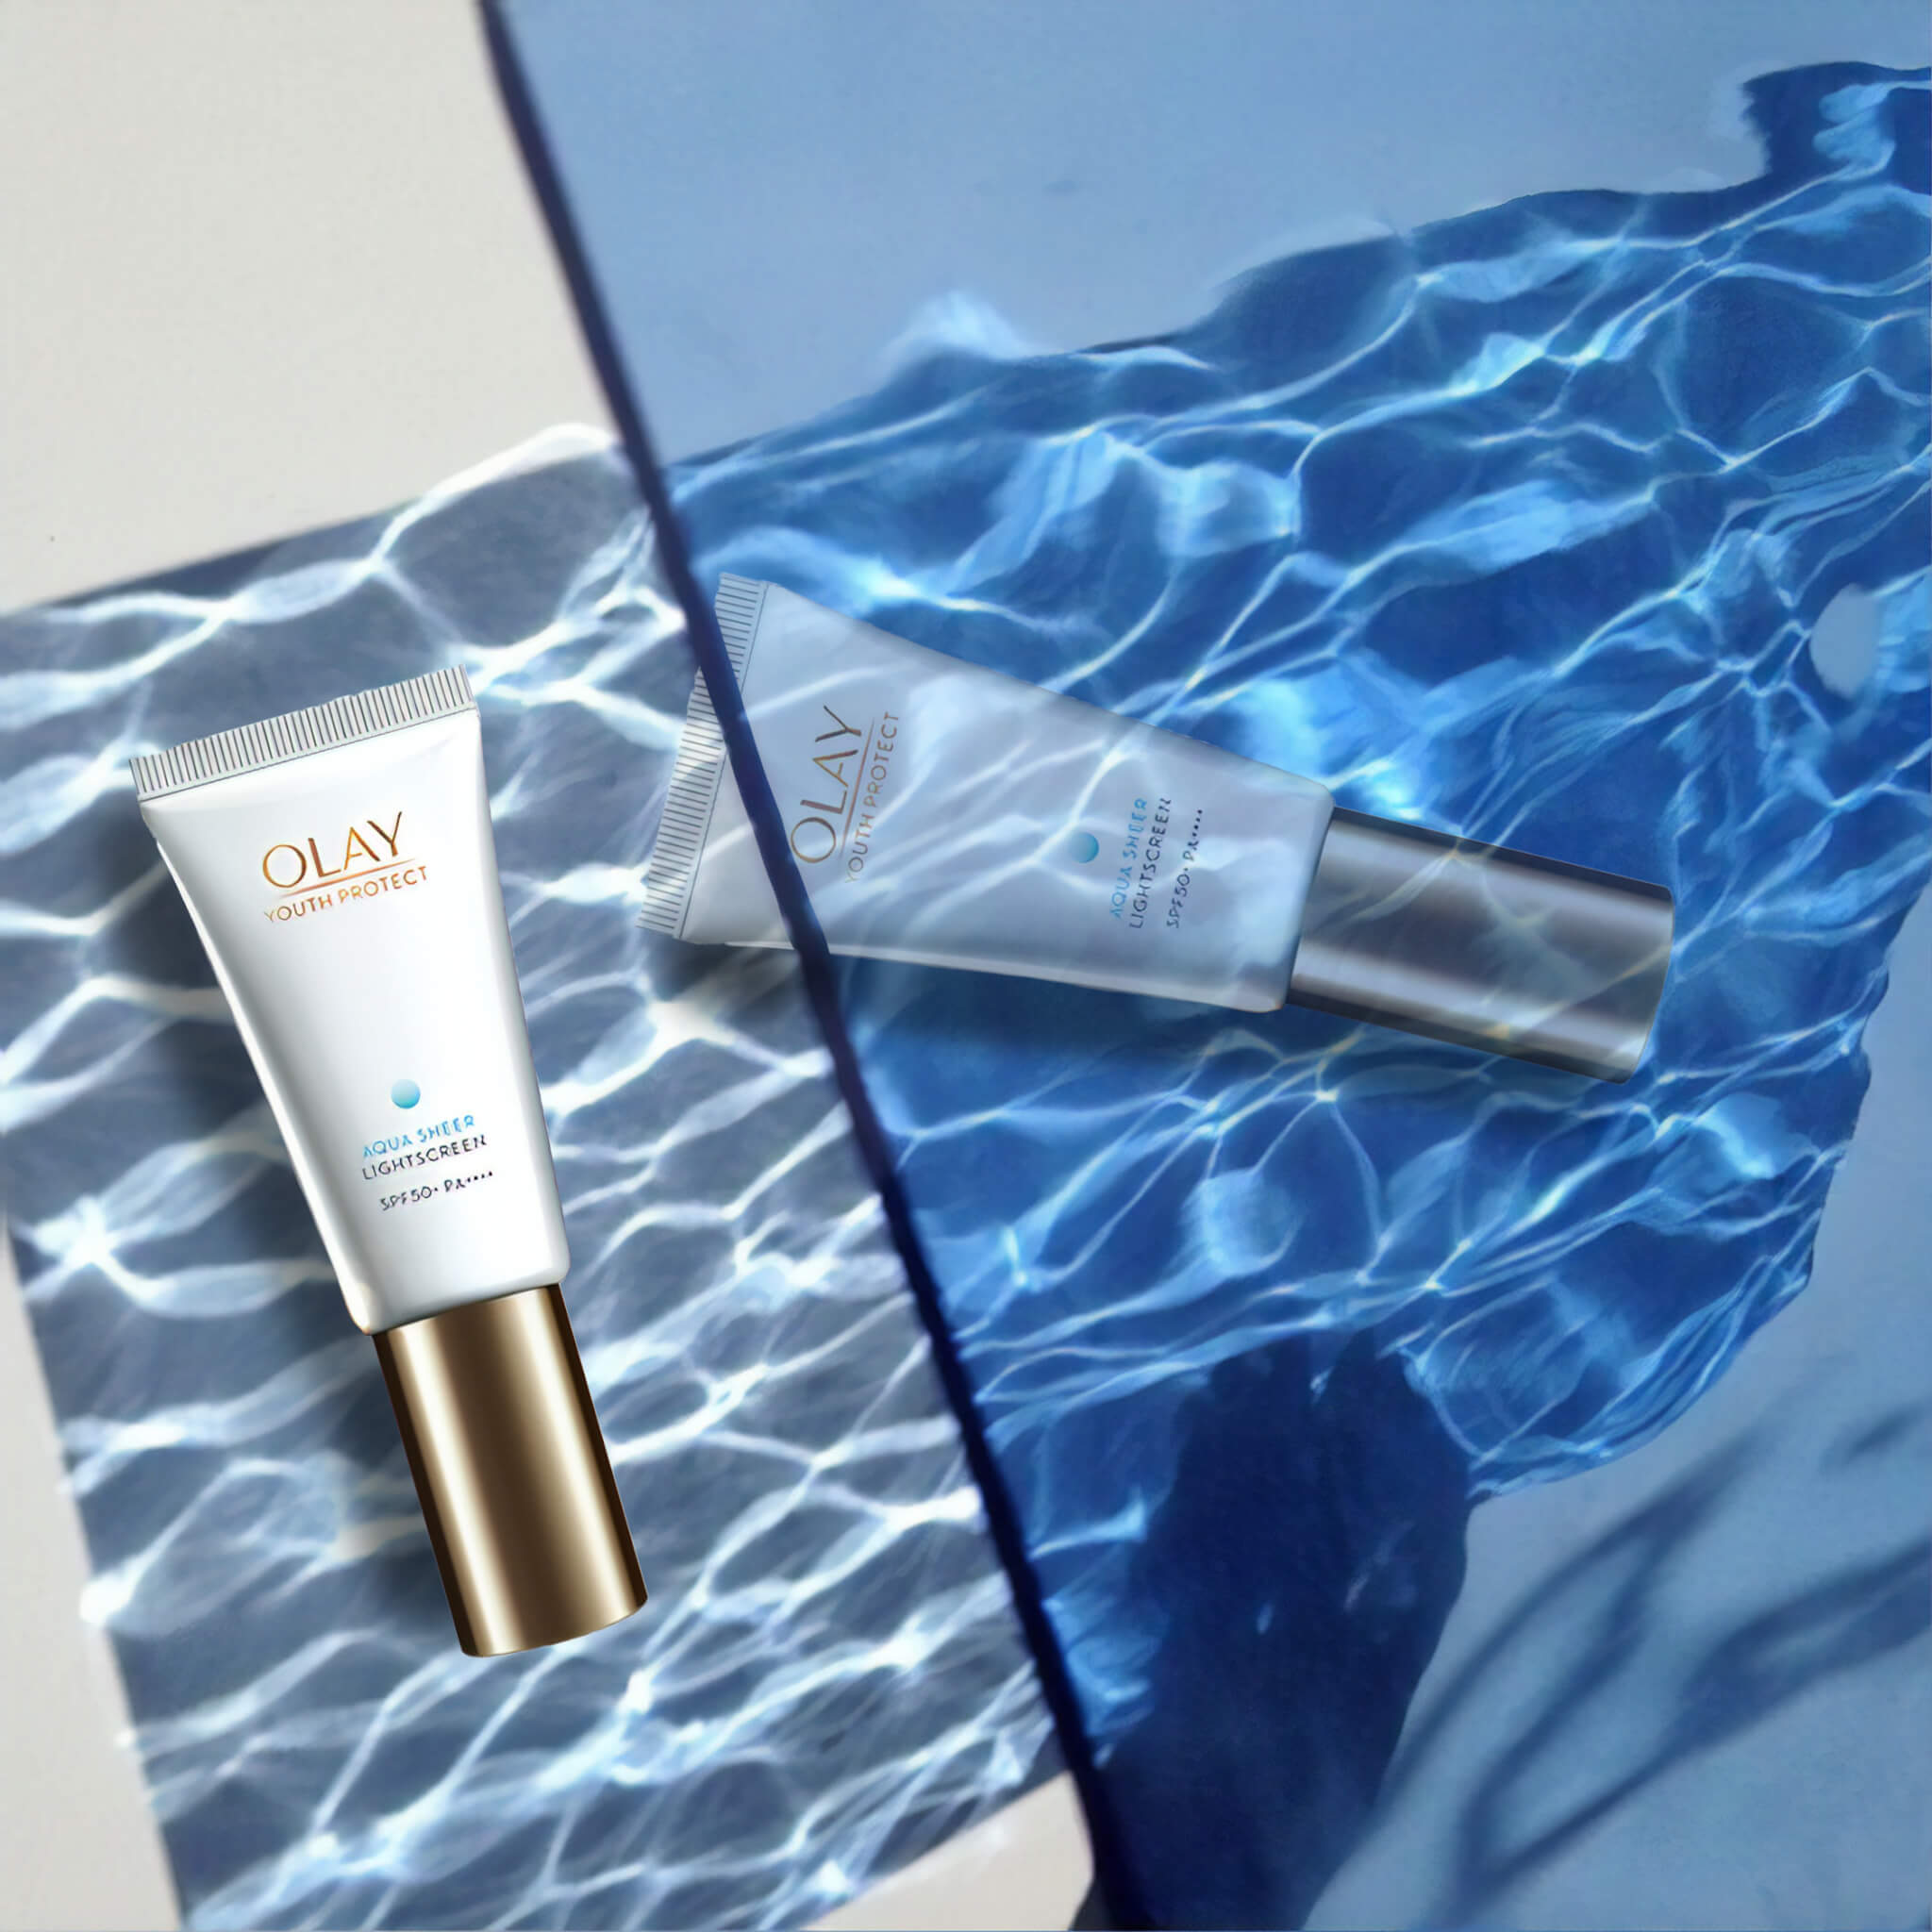 AQUA SHEER LIGHTSCREEN SPF50 $290